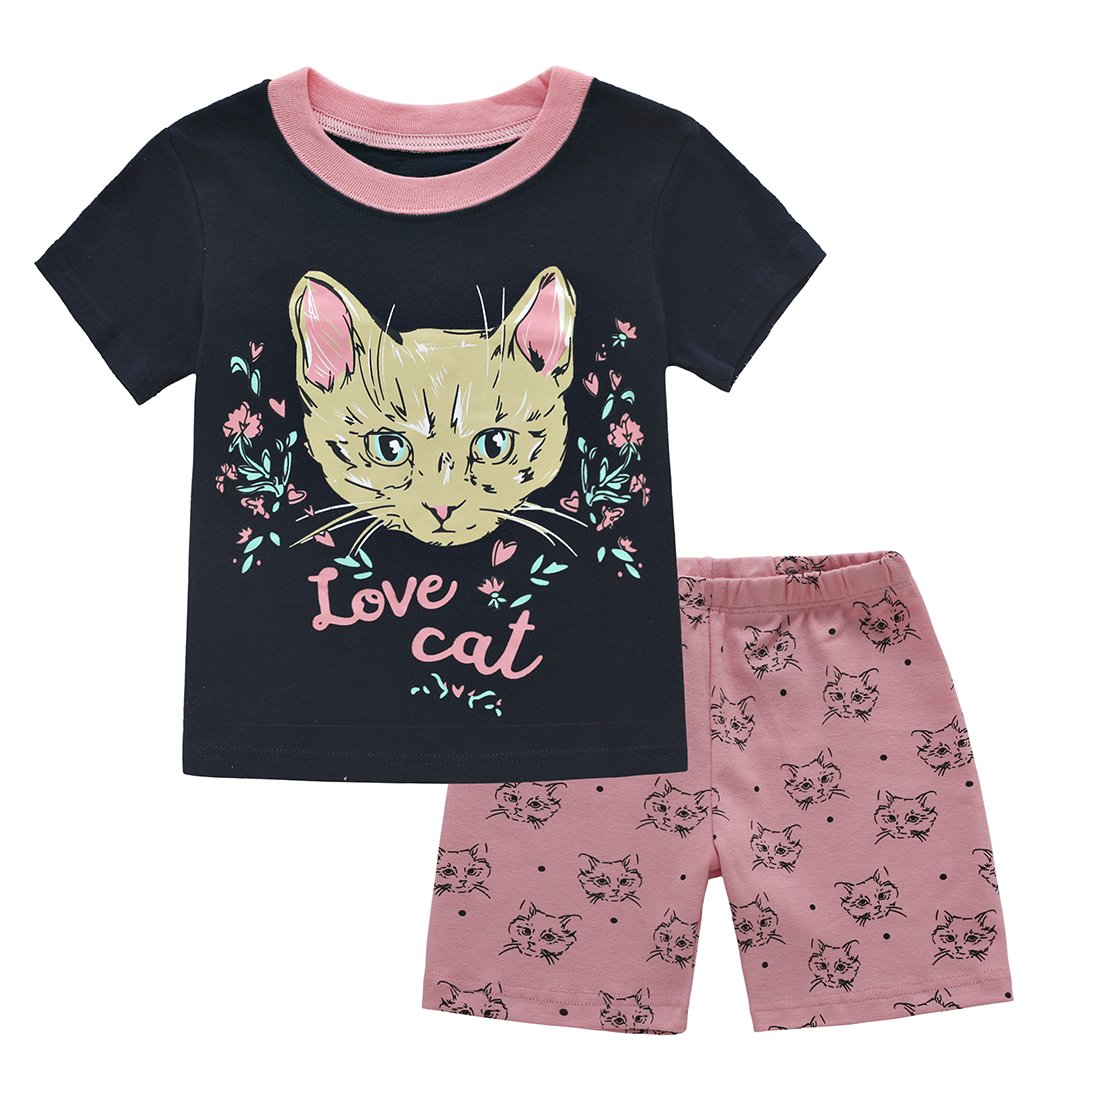 Mri-le1 Newborn Kids Short Sleeved Coveralls Bulldog I Like Dogs More Baby Clothes